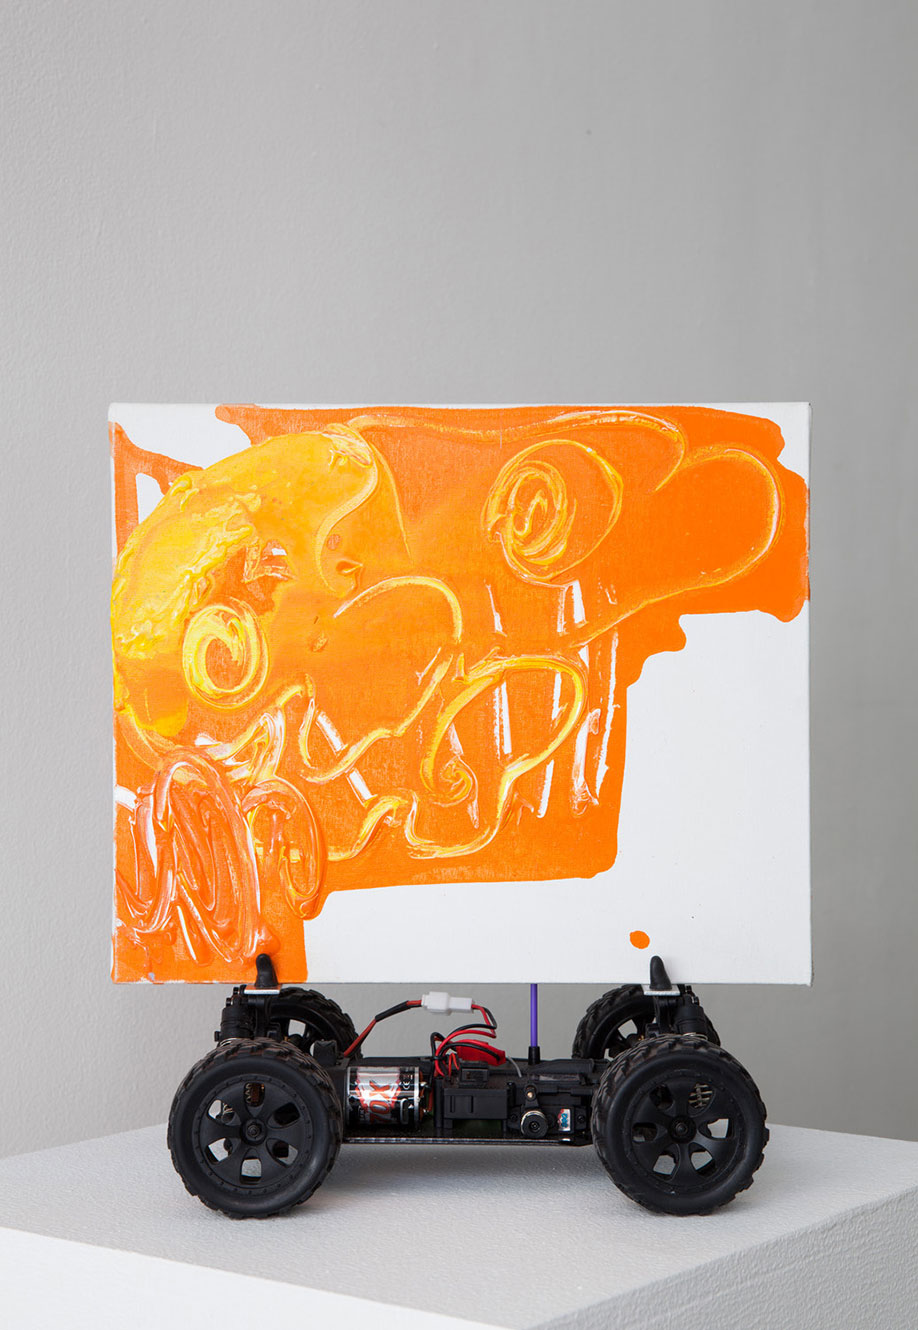 <b>Title:&nbsp;</b>Remote Control Painting<br /><b>Year:&nbsp;</b>2013<br /><b>Medium:&nbsp;</b>Remote control car, painting<br /><b>Size:&nbsp;</b>34 x 30 x 19 cm